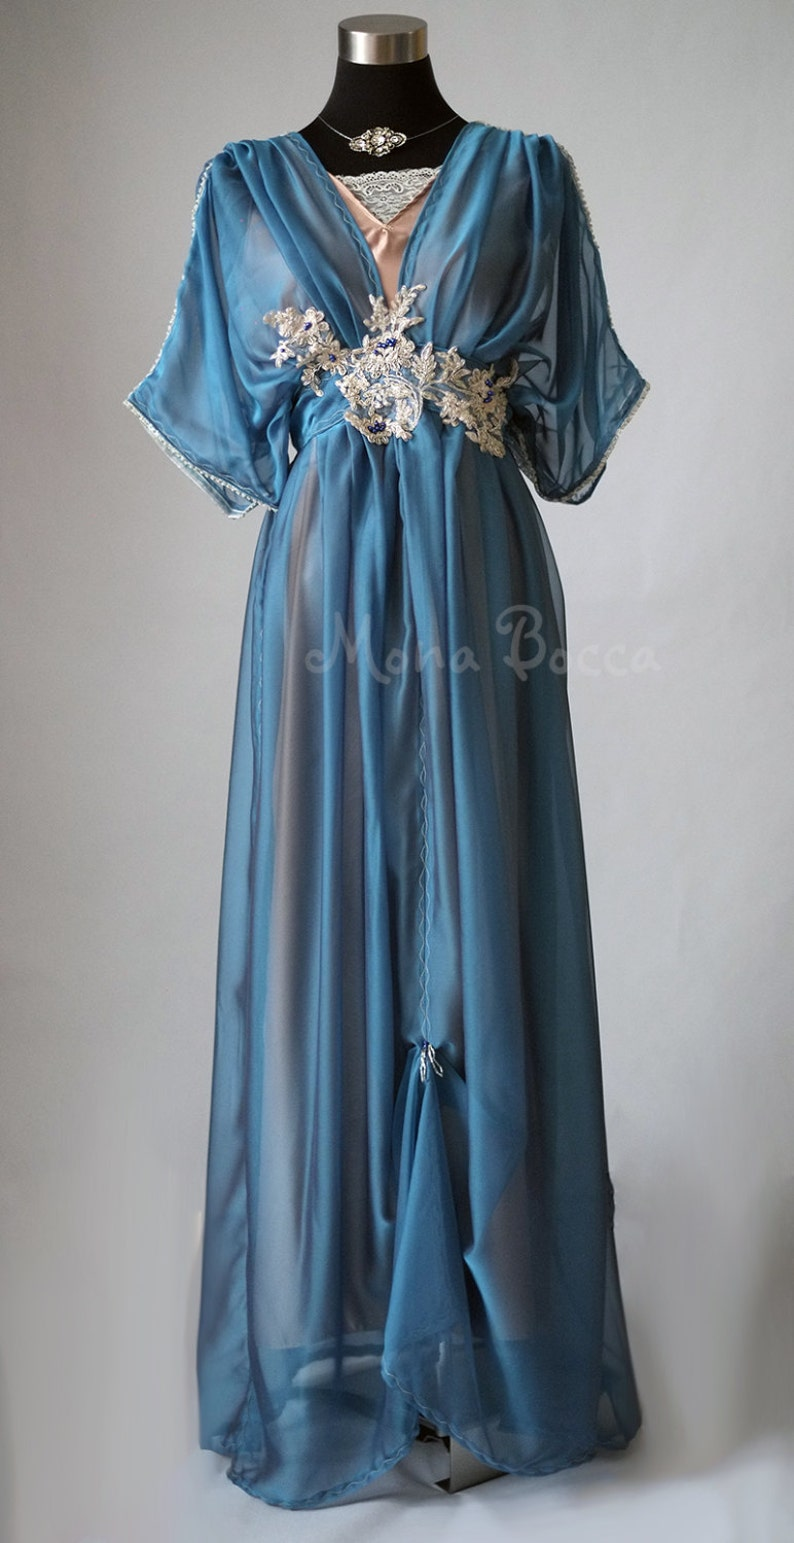 Edwardian Evening Gowns , Ballgowns, Formal Dresses Edwardian evening blue dress for Downton Abbey dinner Titanic event or alternative blue wedding dress 1912 gown Gibson girl plus size 0-30US $359.00 AT vintagedancer.com